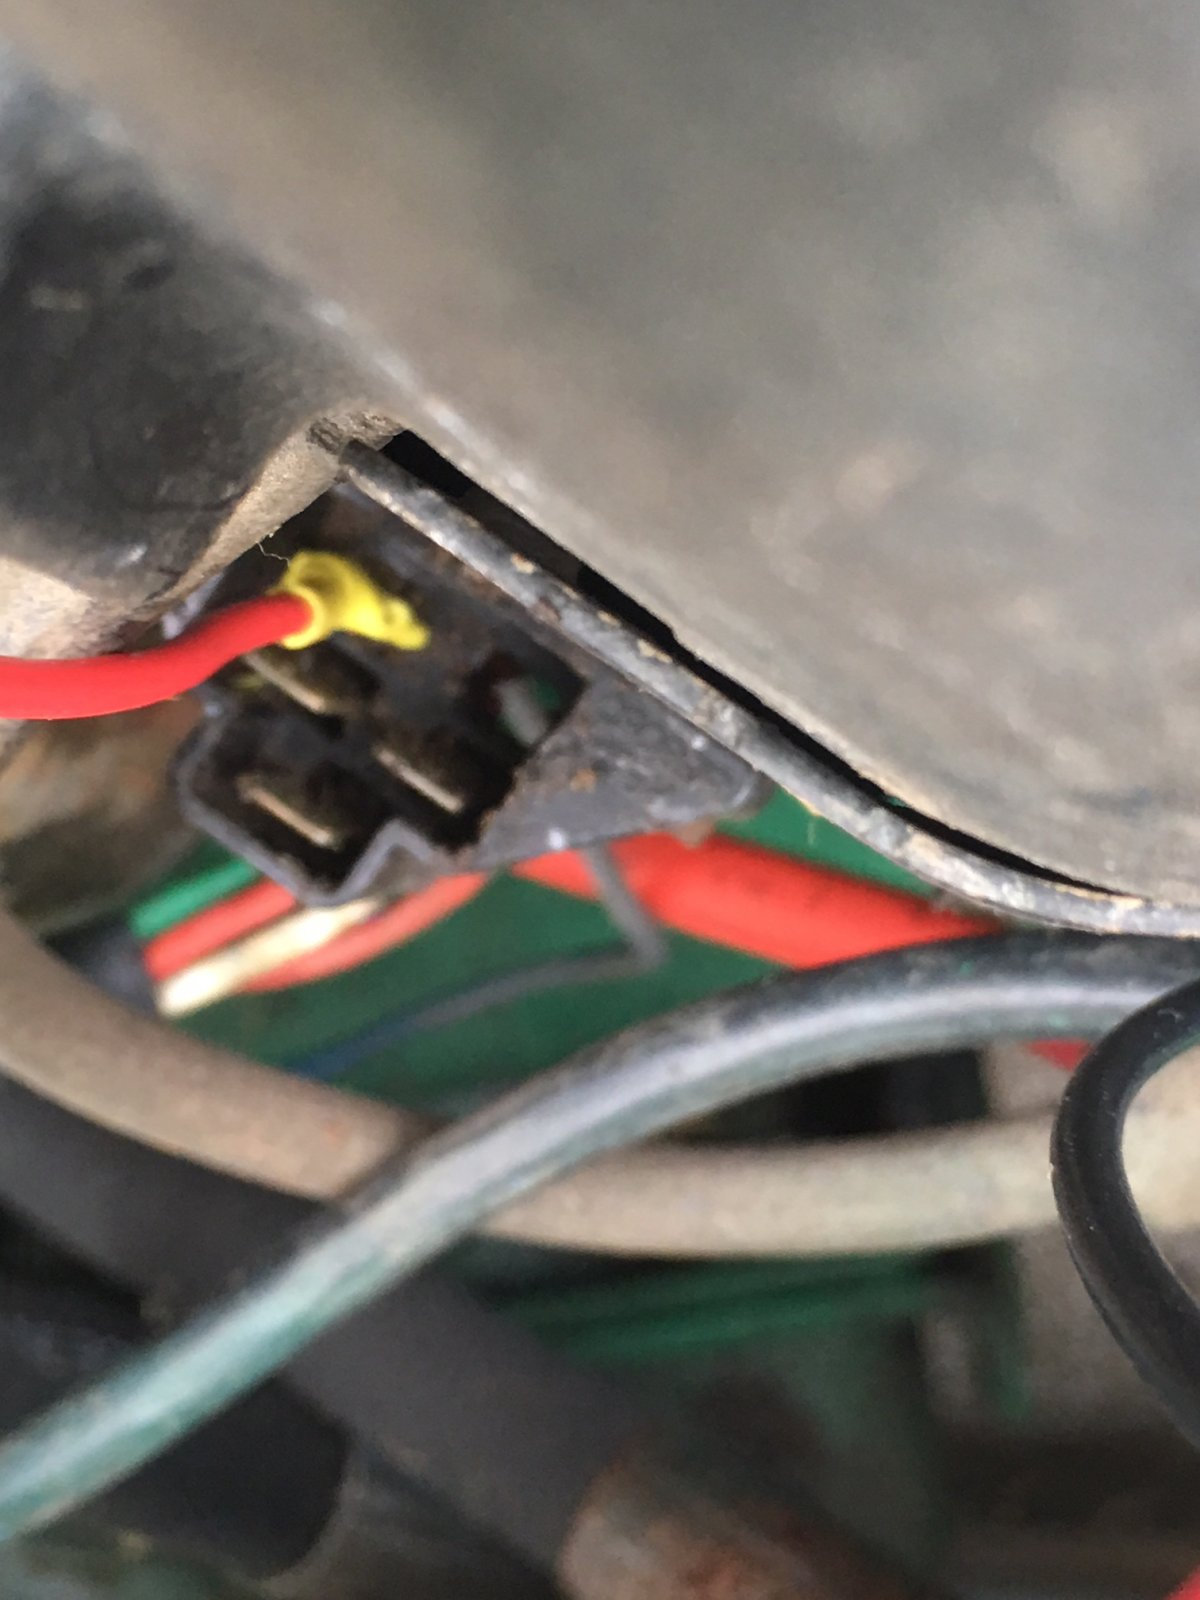 Help with Harness-jumper on Old Kohler engine | LawnSite No Red Wire On Wiring Harness on